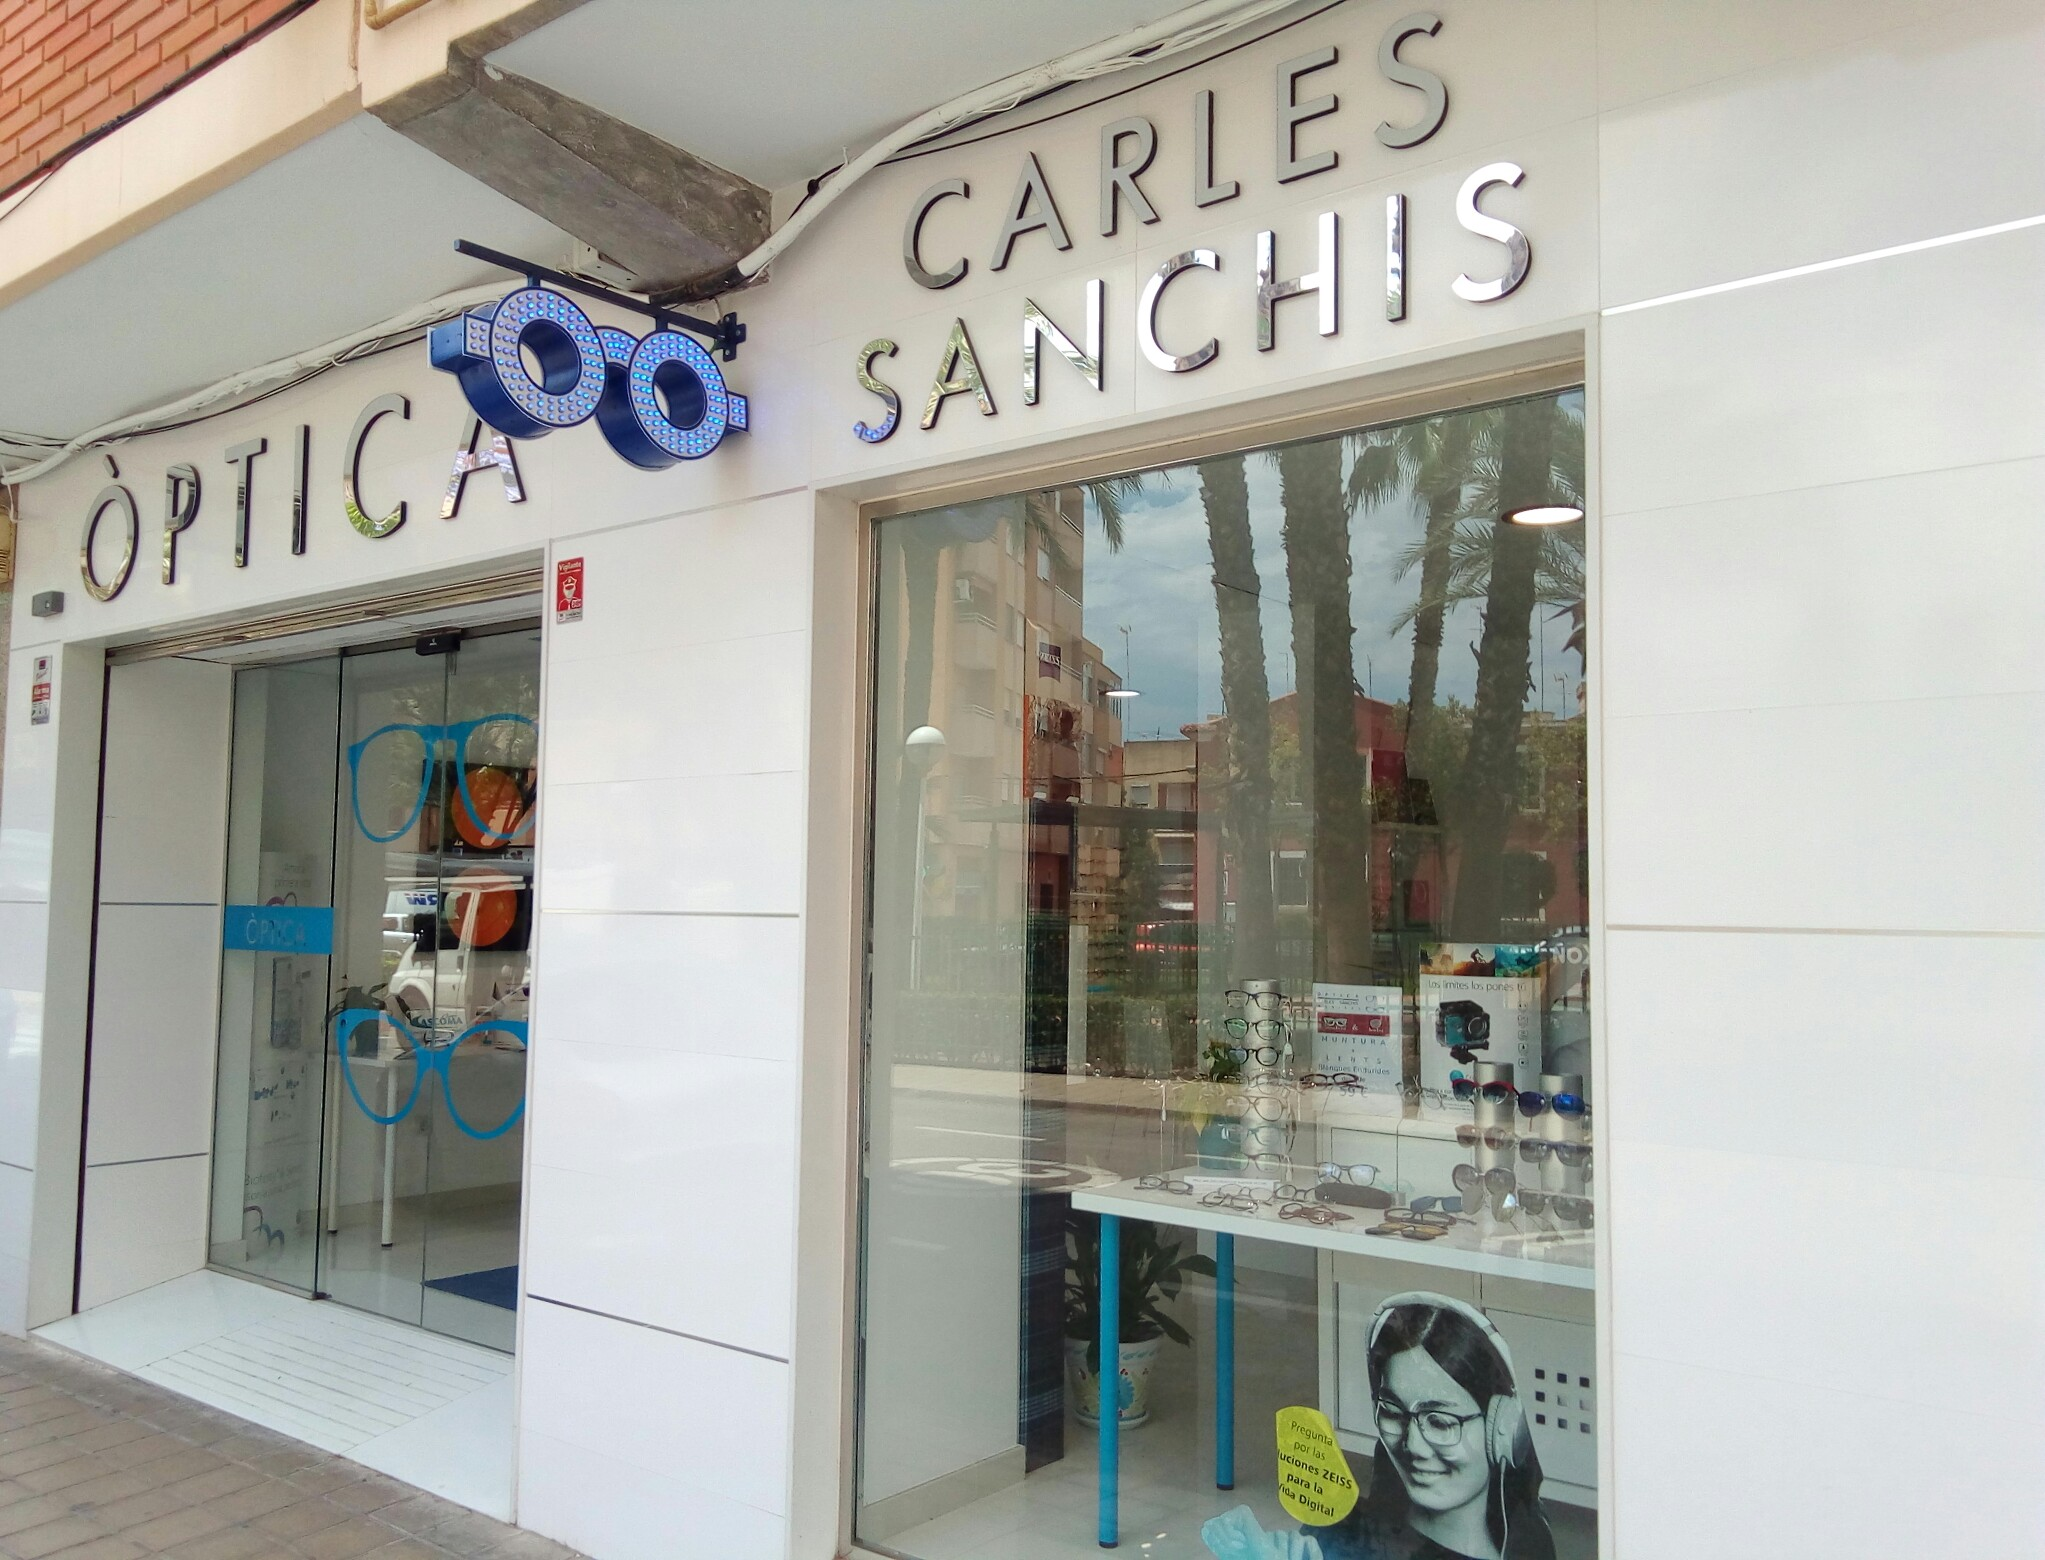 Optica-Carles-Sanchis-2.jpg